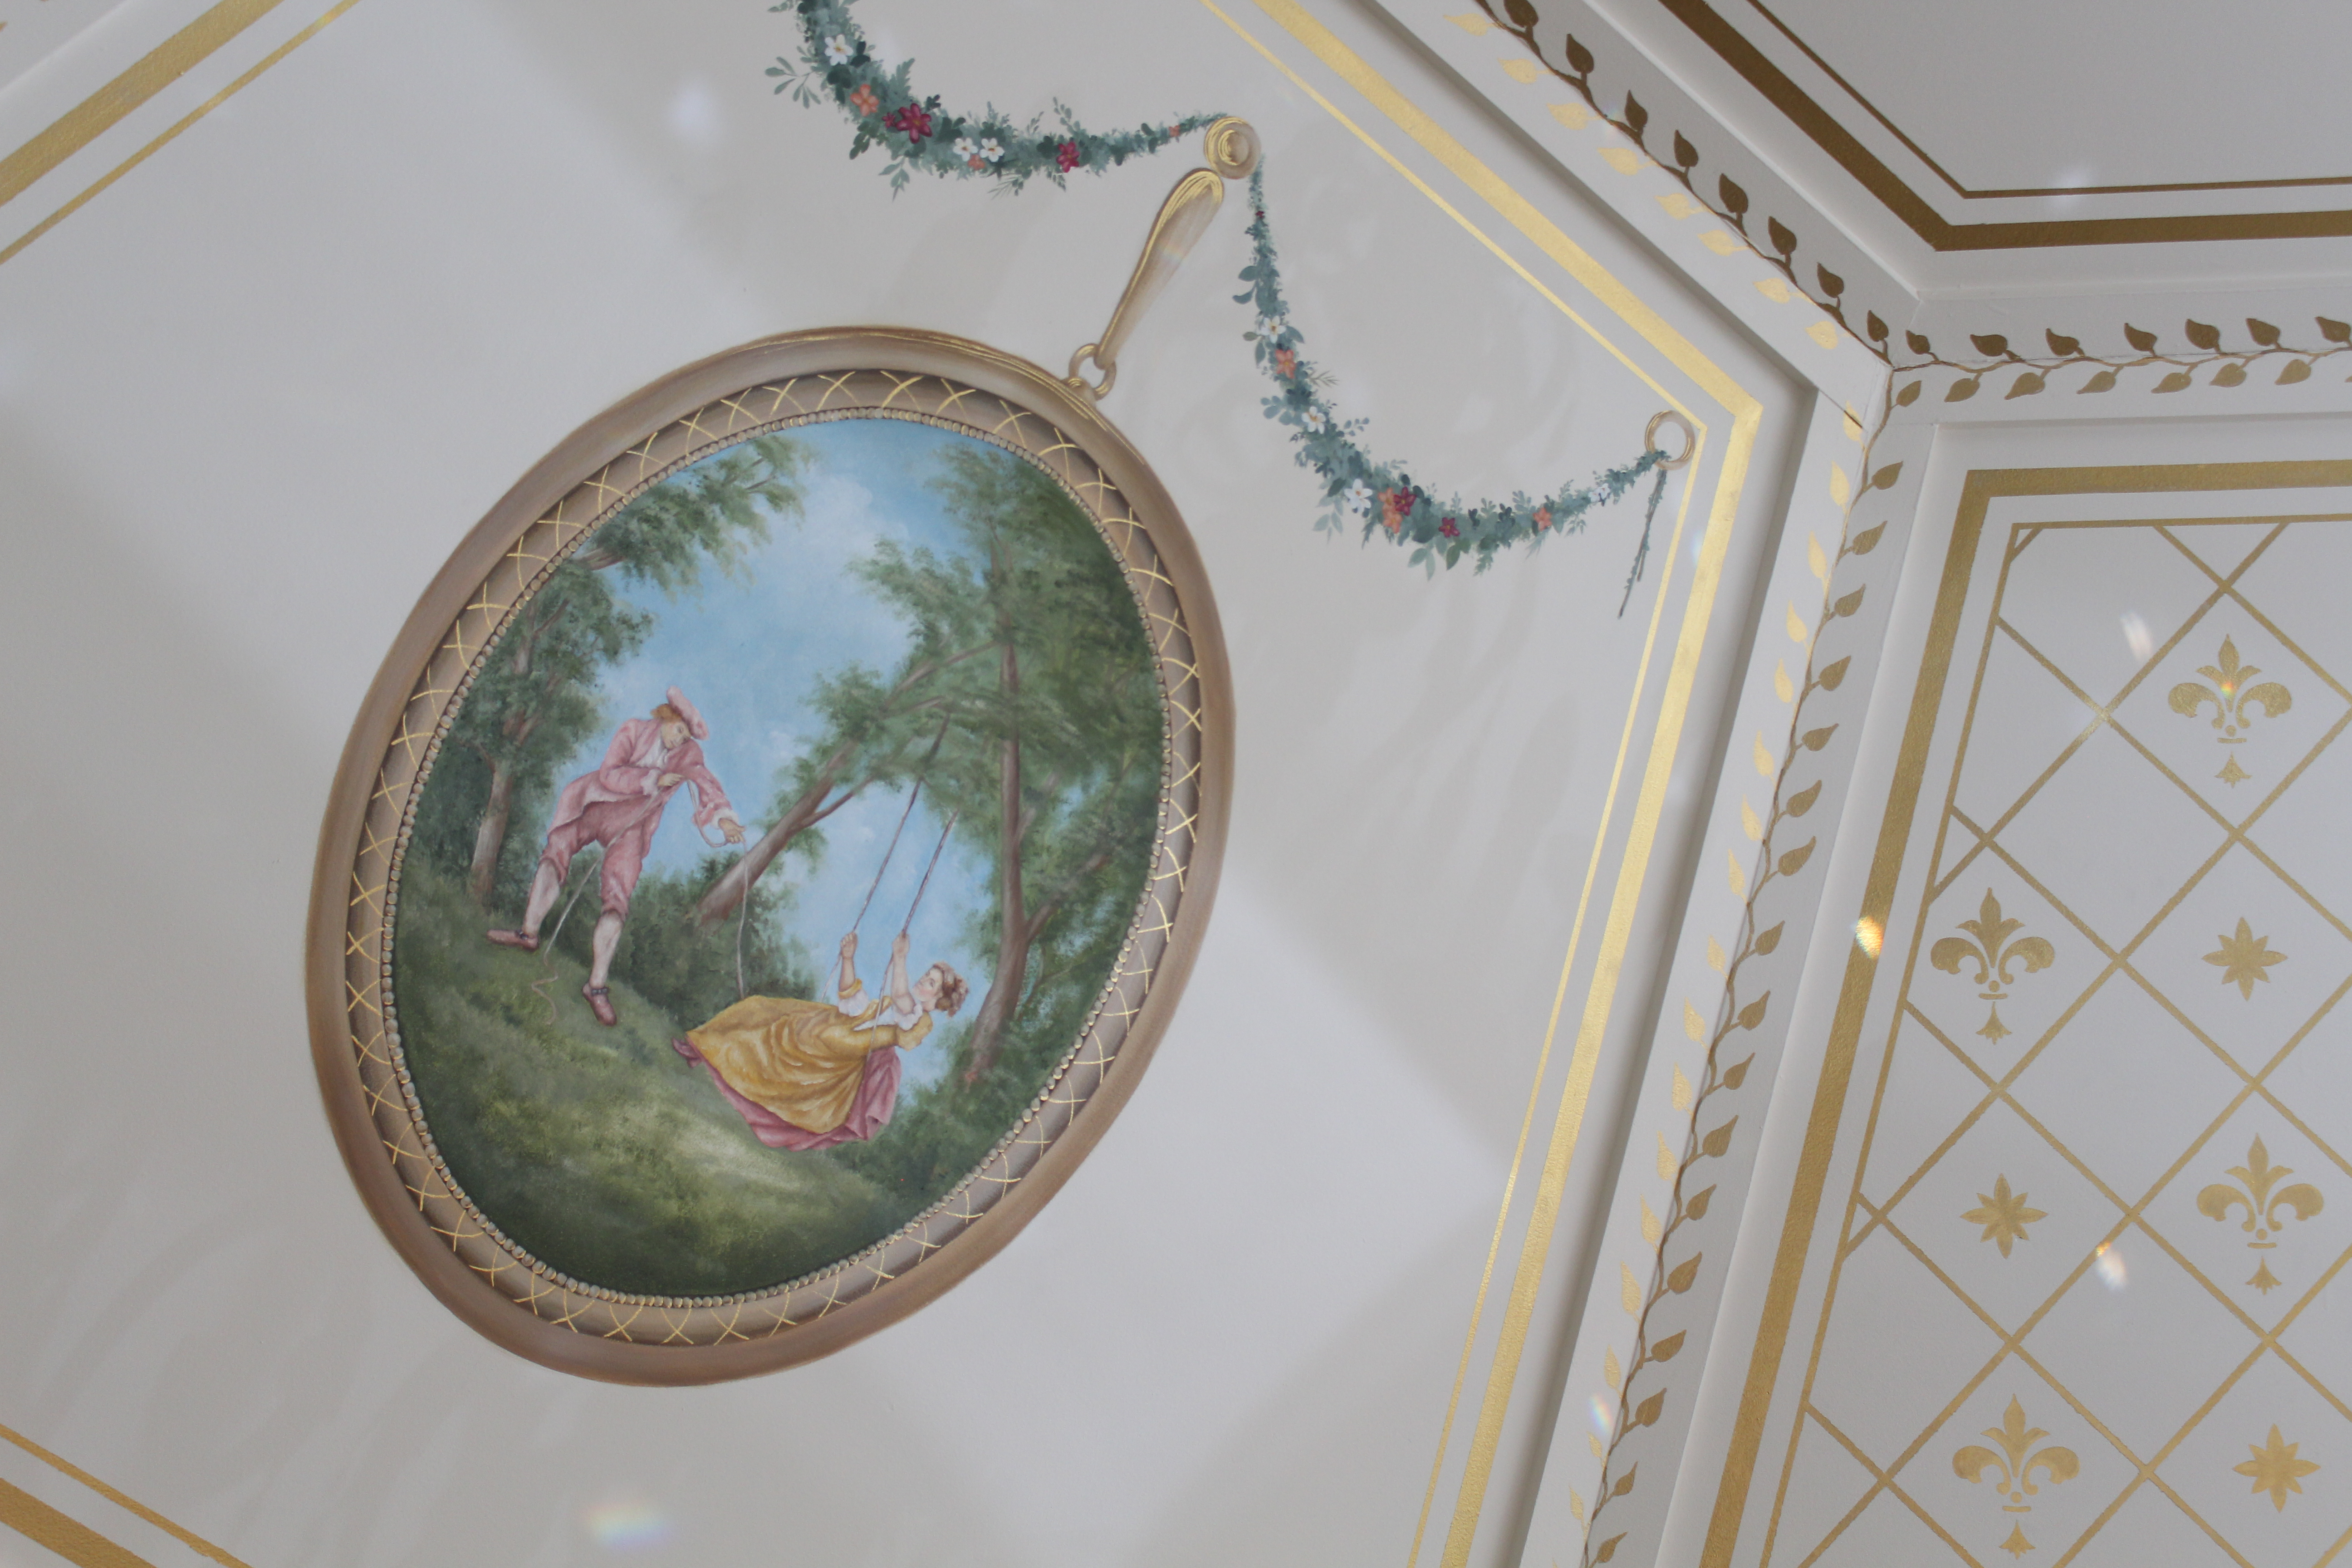 Mural and Ceiling Dome Sadd River NJ